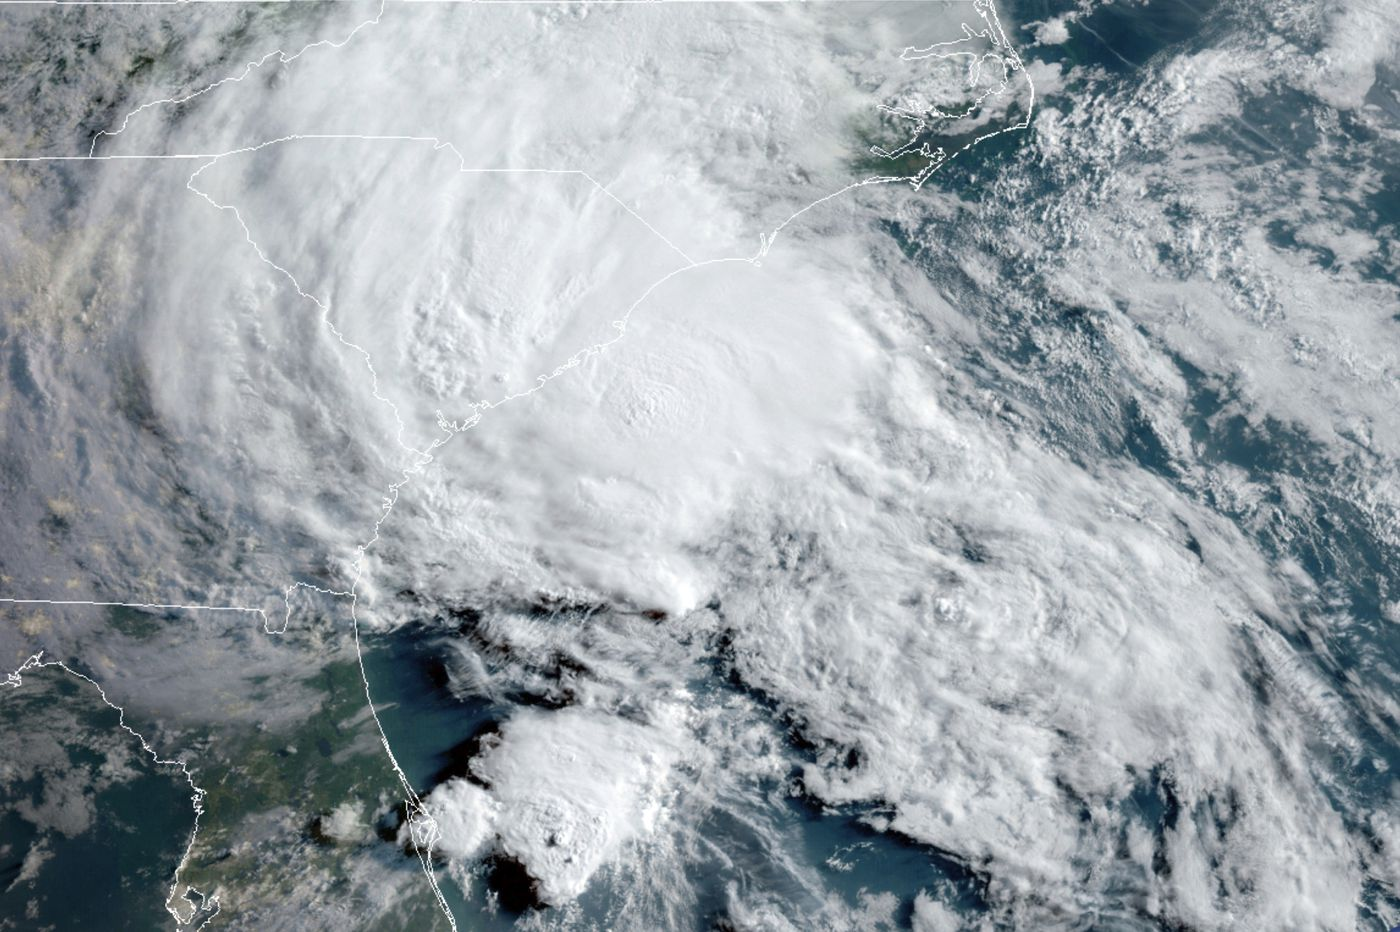 Short-lived Bertha the second named storm of a hurricane season that hasn't even started yet